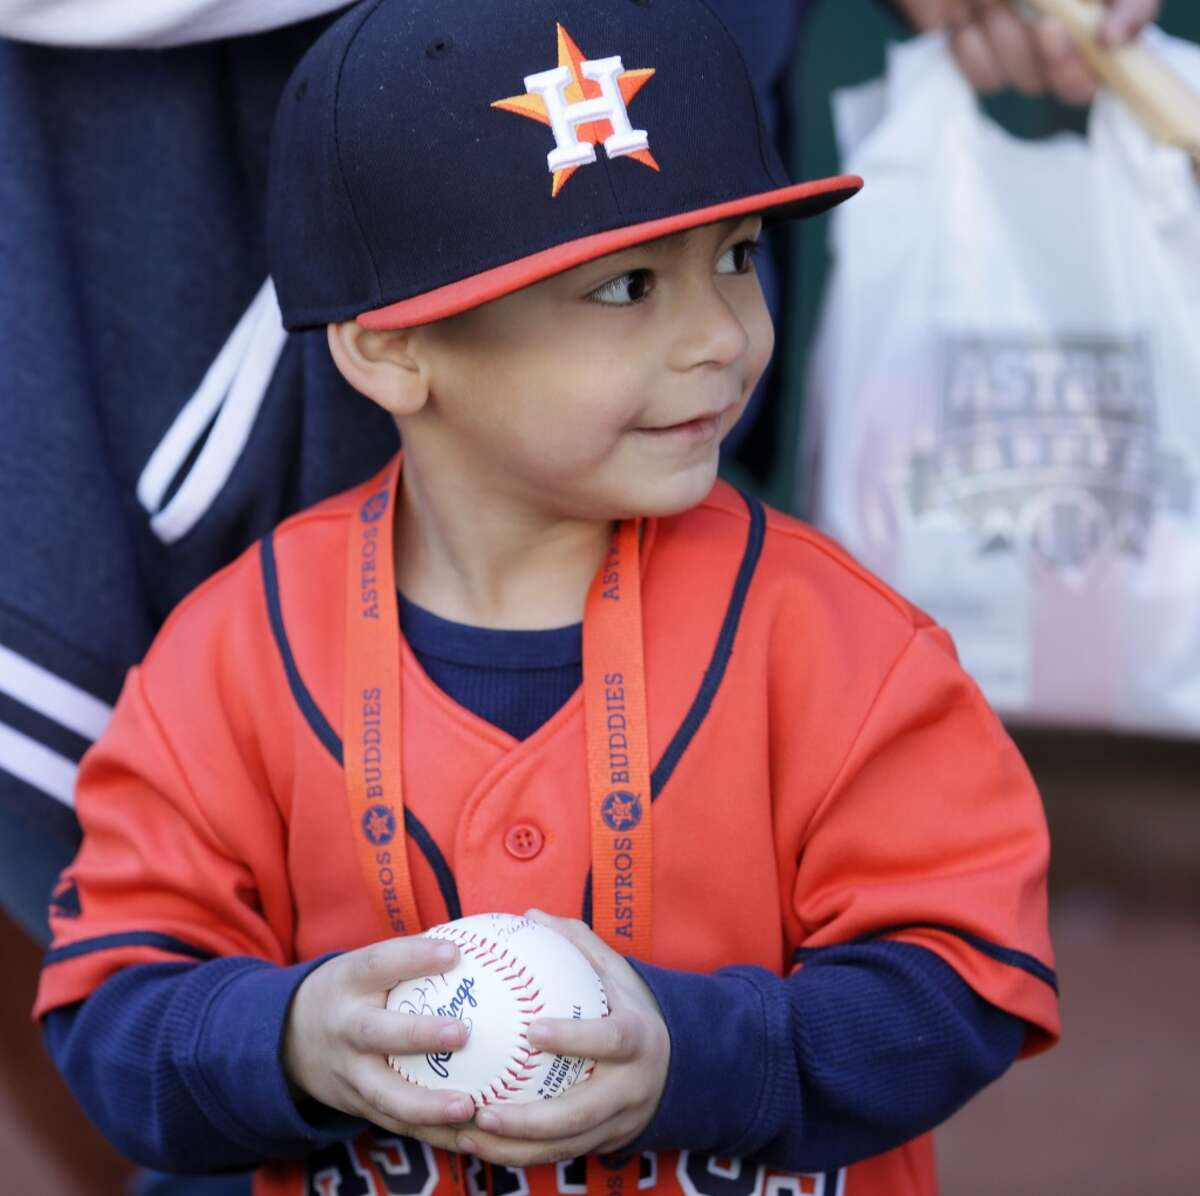 """""""Cubby"""" Garcia, 4, smiles as he holds an autographed baseball at Astros fan fest at Minute Maid Park Saturday, Jan. 23, 2016, in Houston. ( Jon Shapley / Houston Chronicle )"""